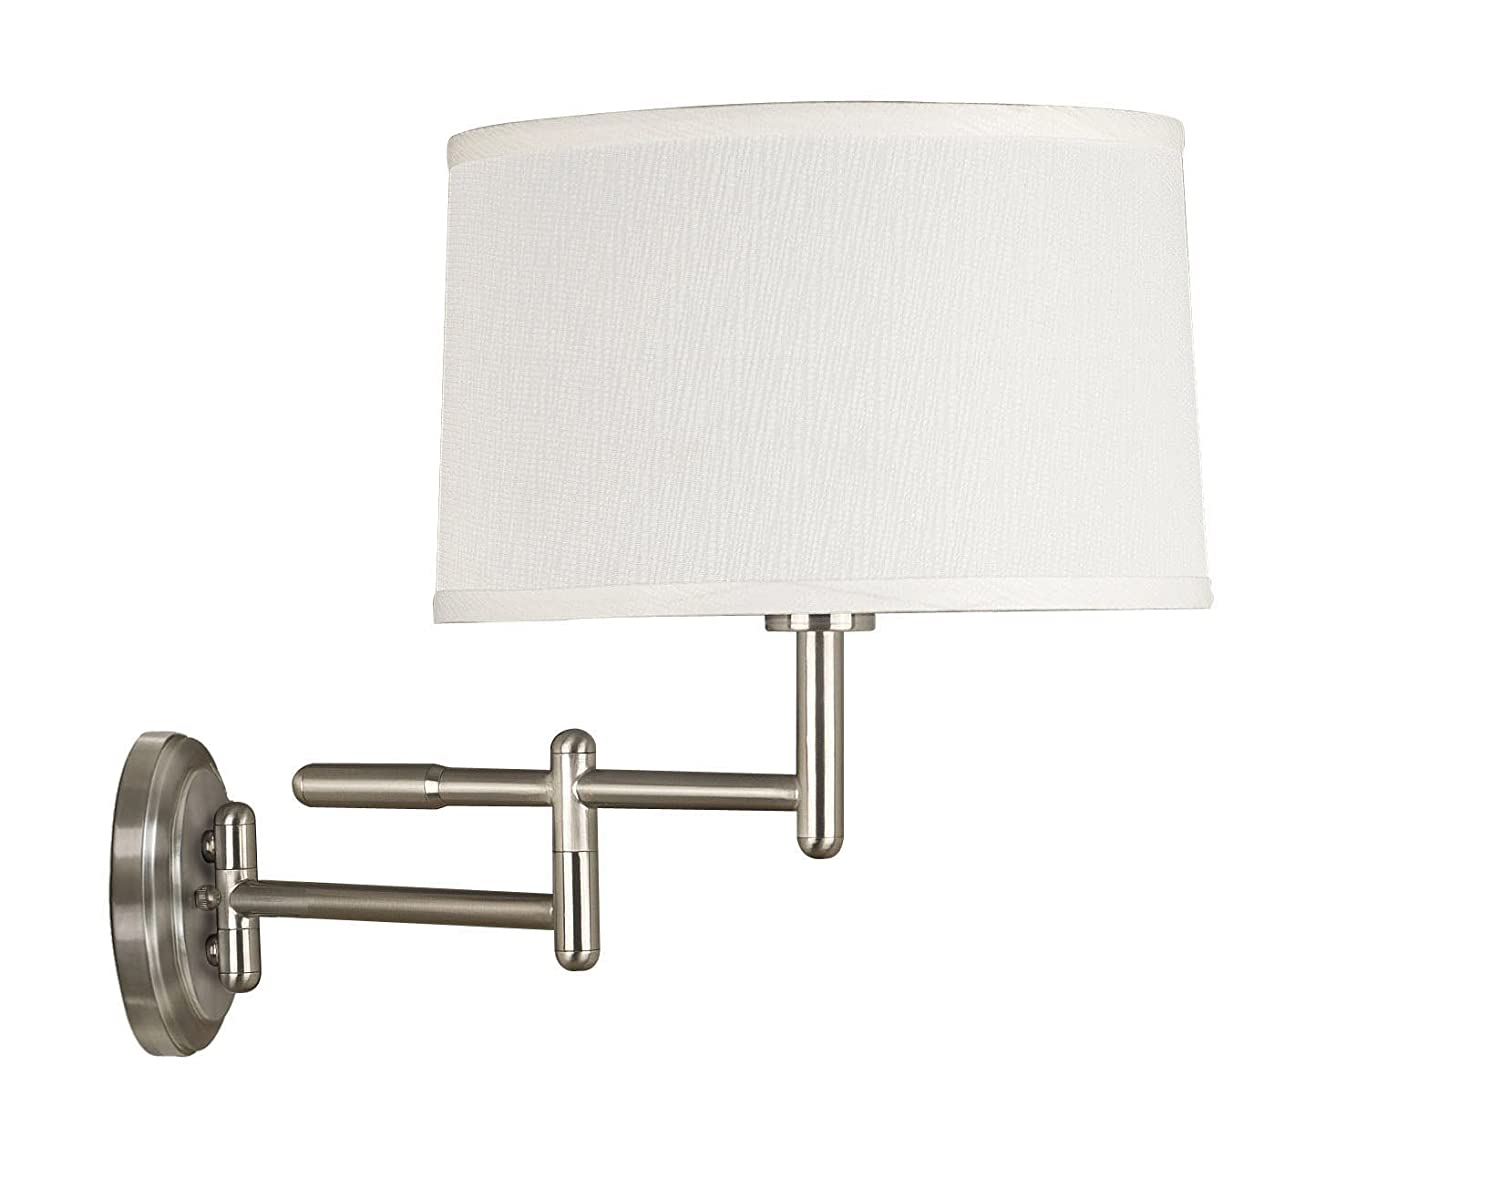 Kenroy Home 20942BS Theta Wall Swing Arm Lamp, Brushed Steel   Wall Sconces    Amazon.com